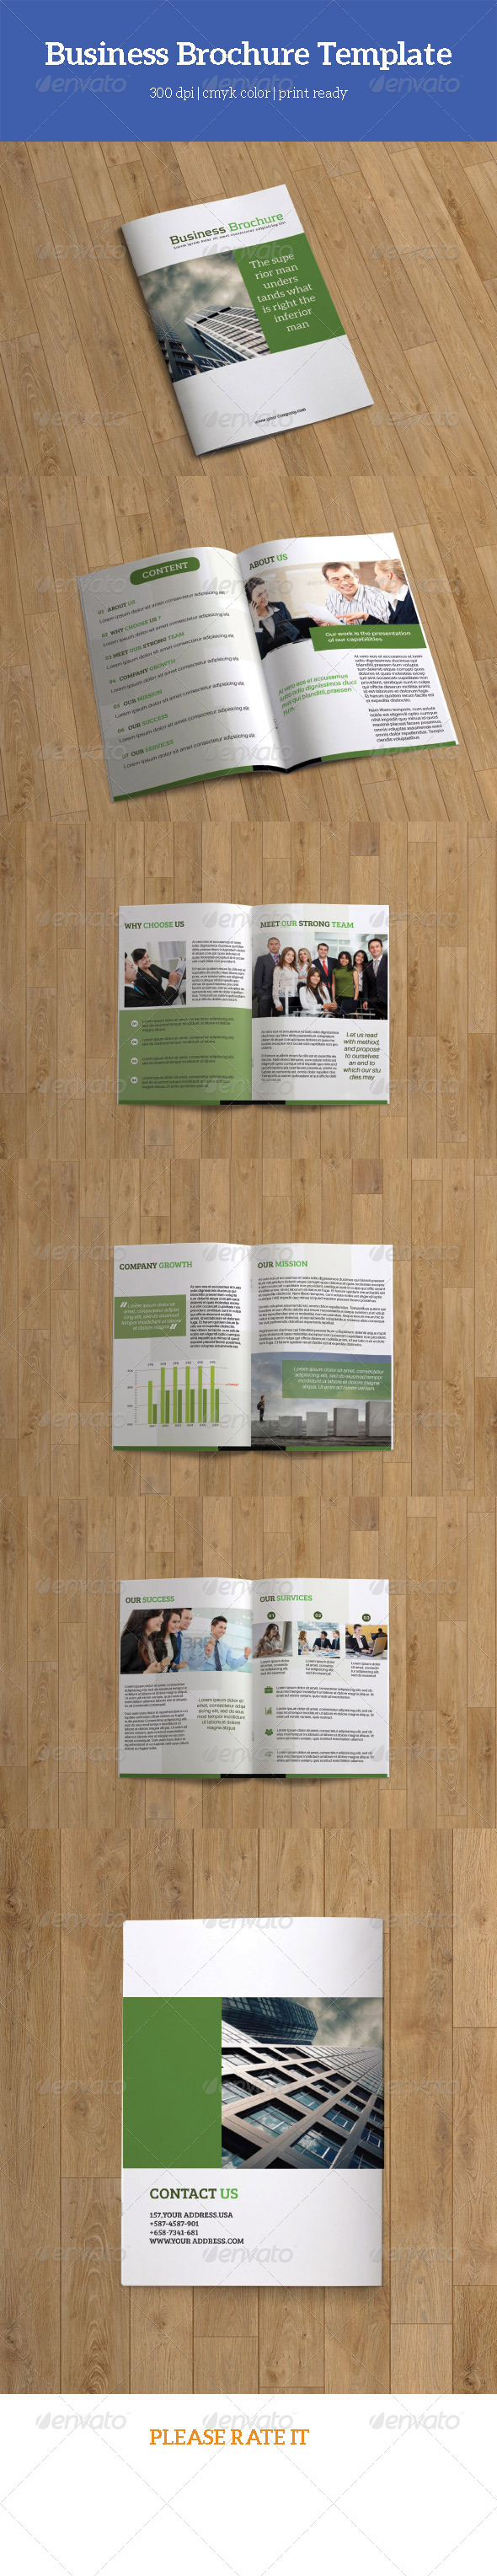 Business Brochure Template-V82